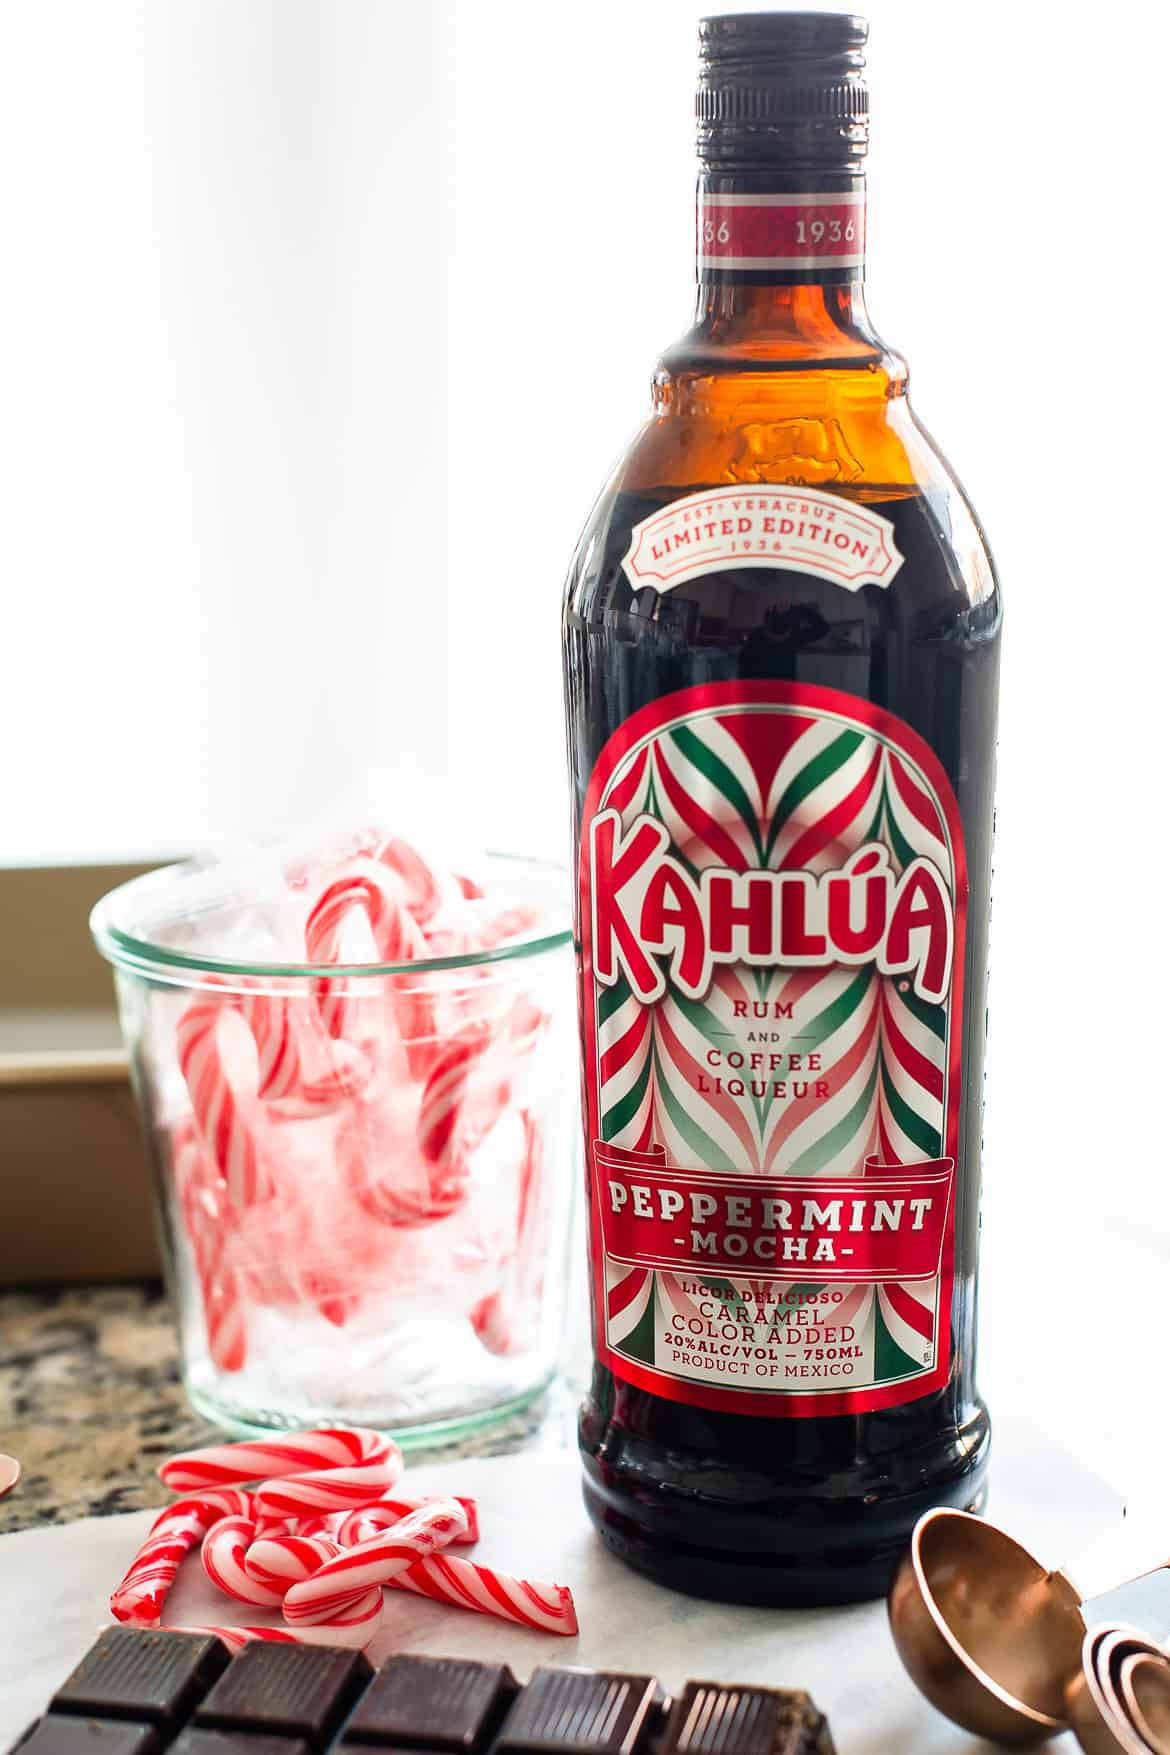 A bottle of Kahlúa Peppermint Mocha, surrounded by candy canes.